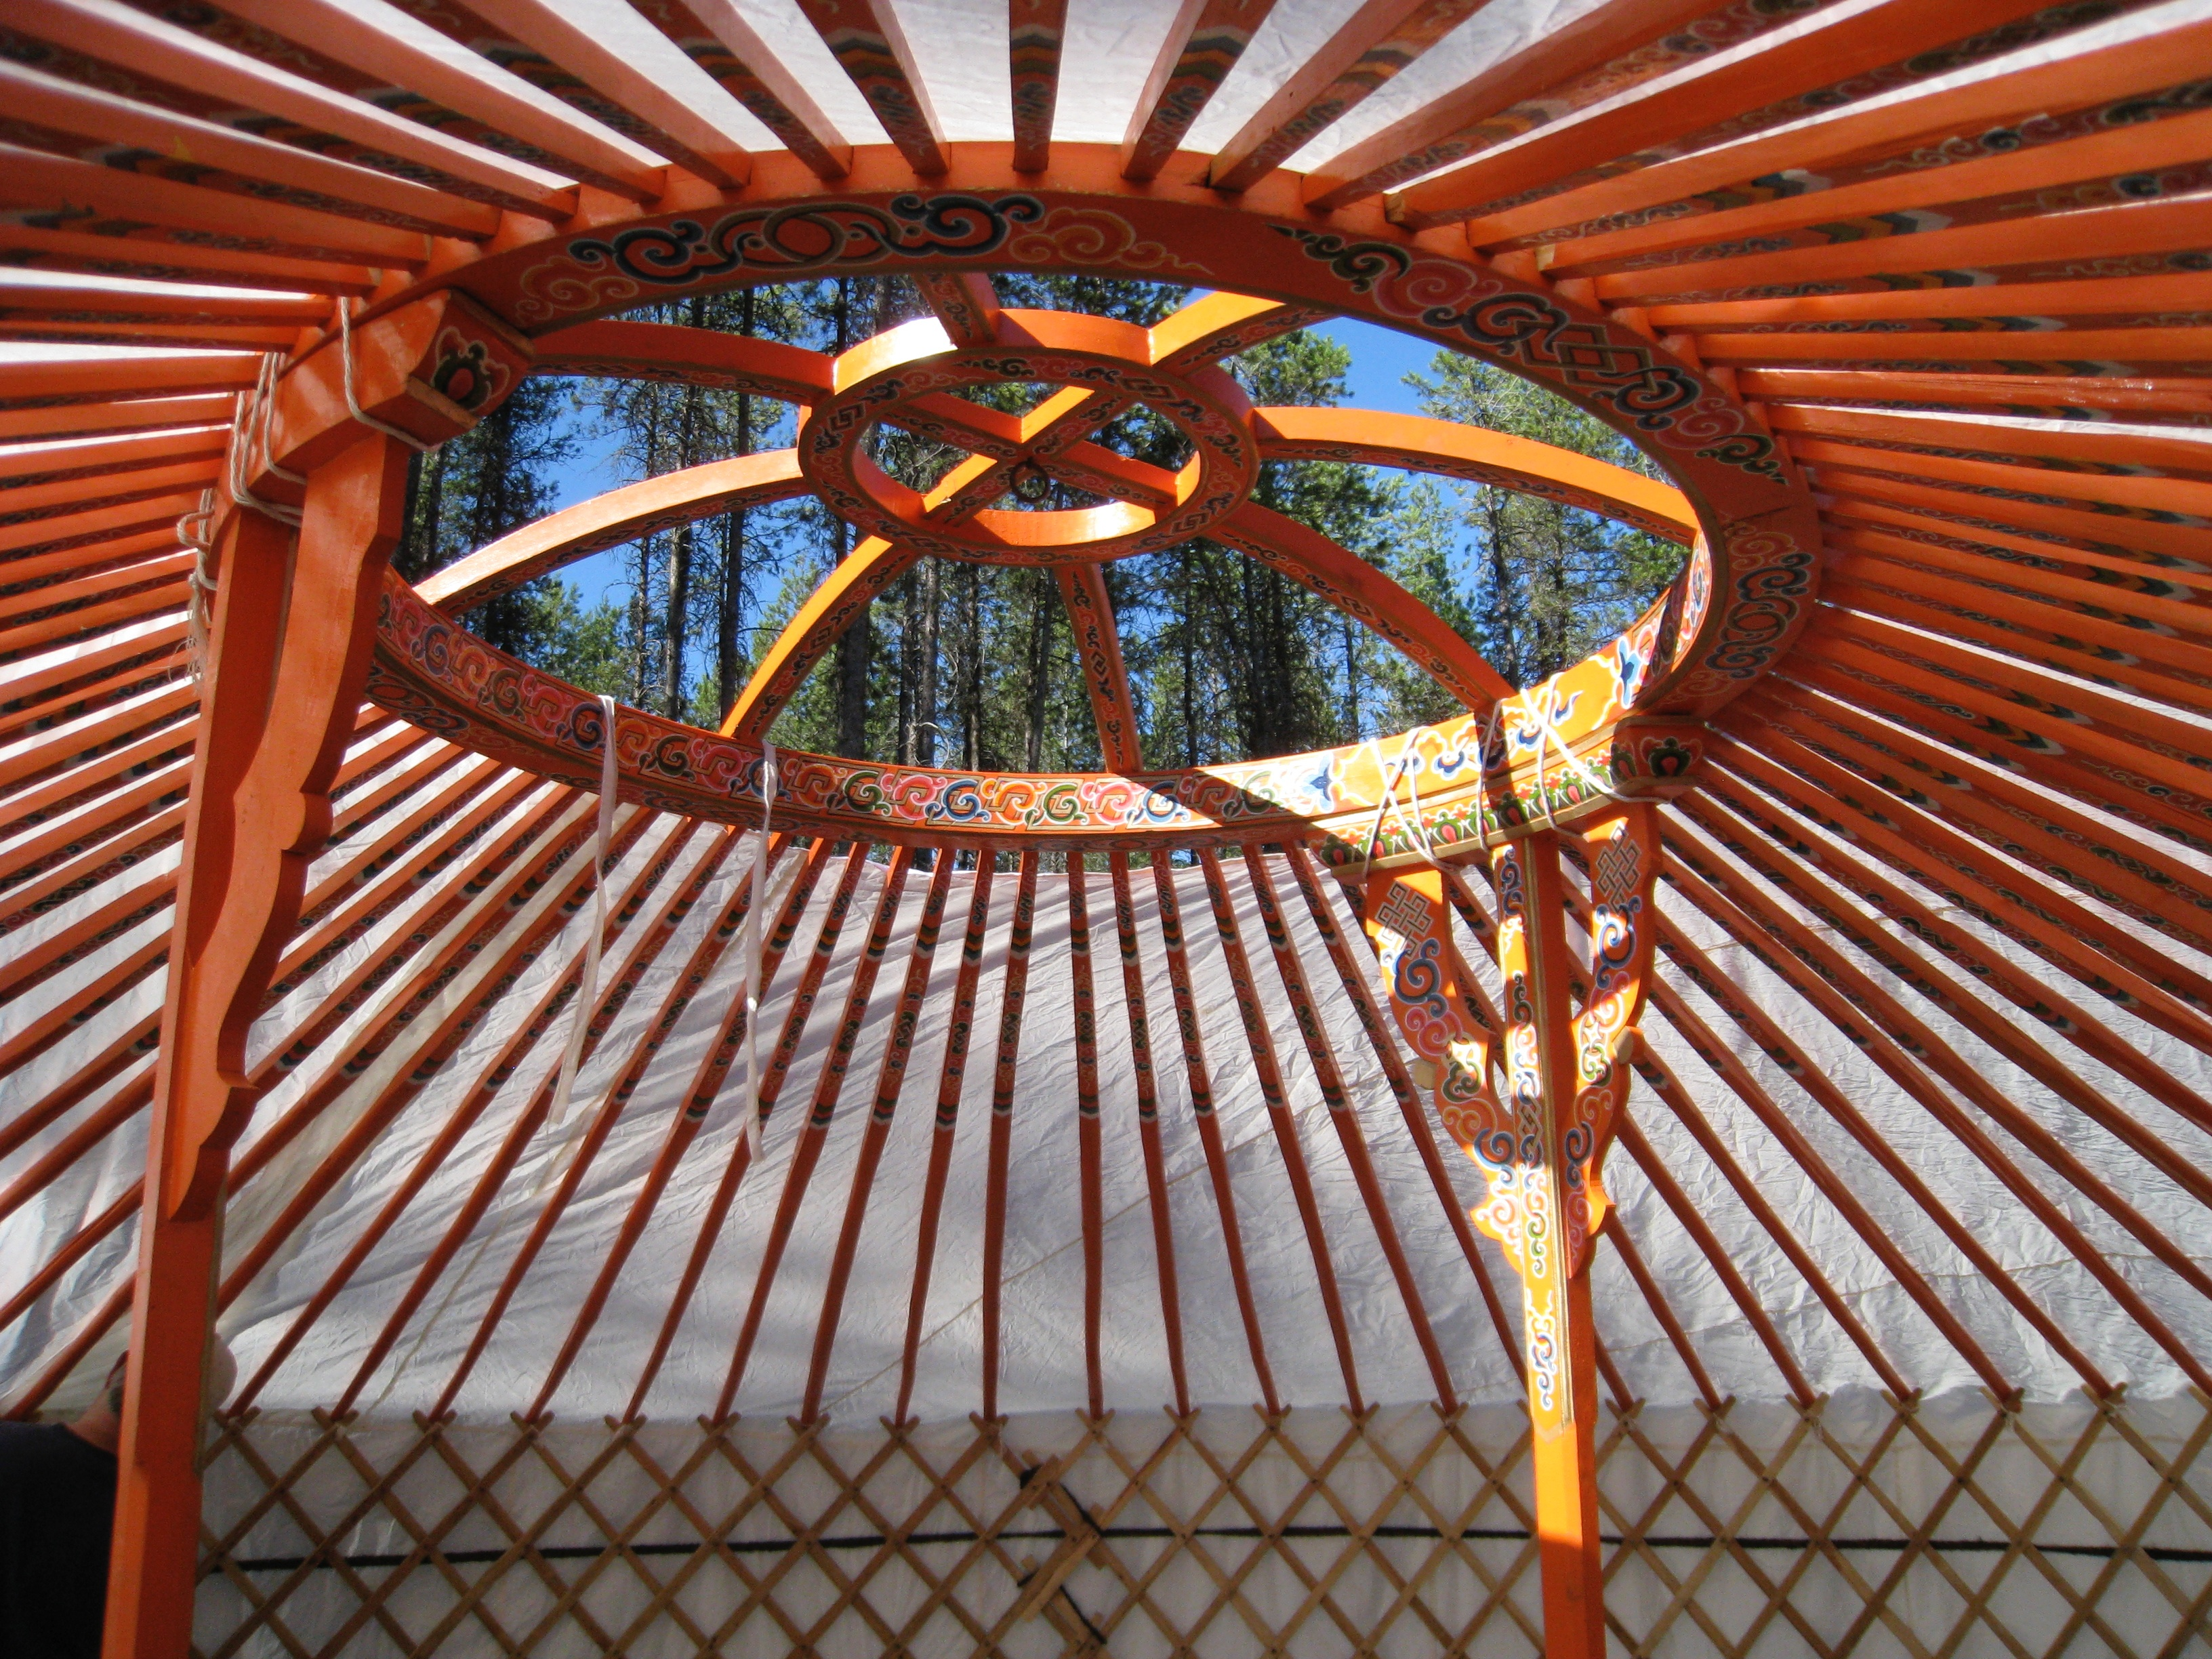 G.N.P. Yurt. A gift from Mongolia